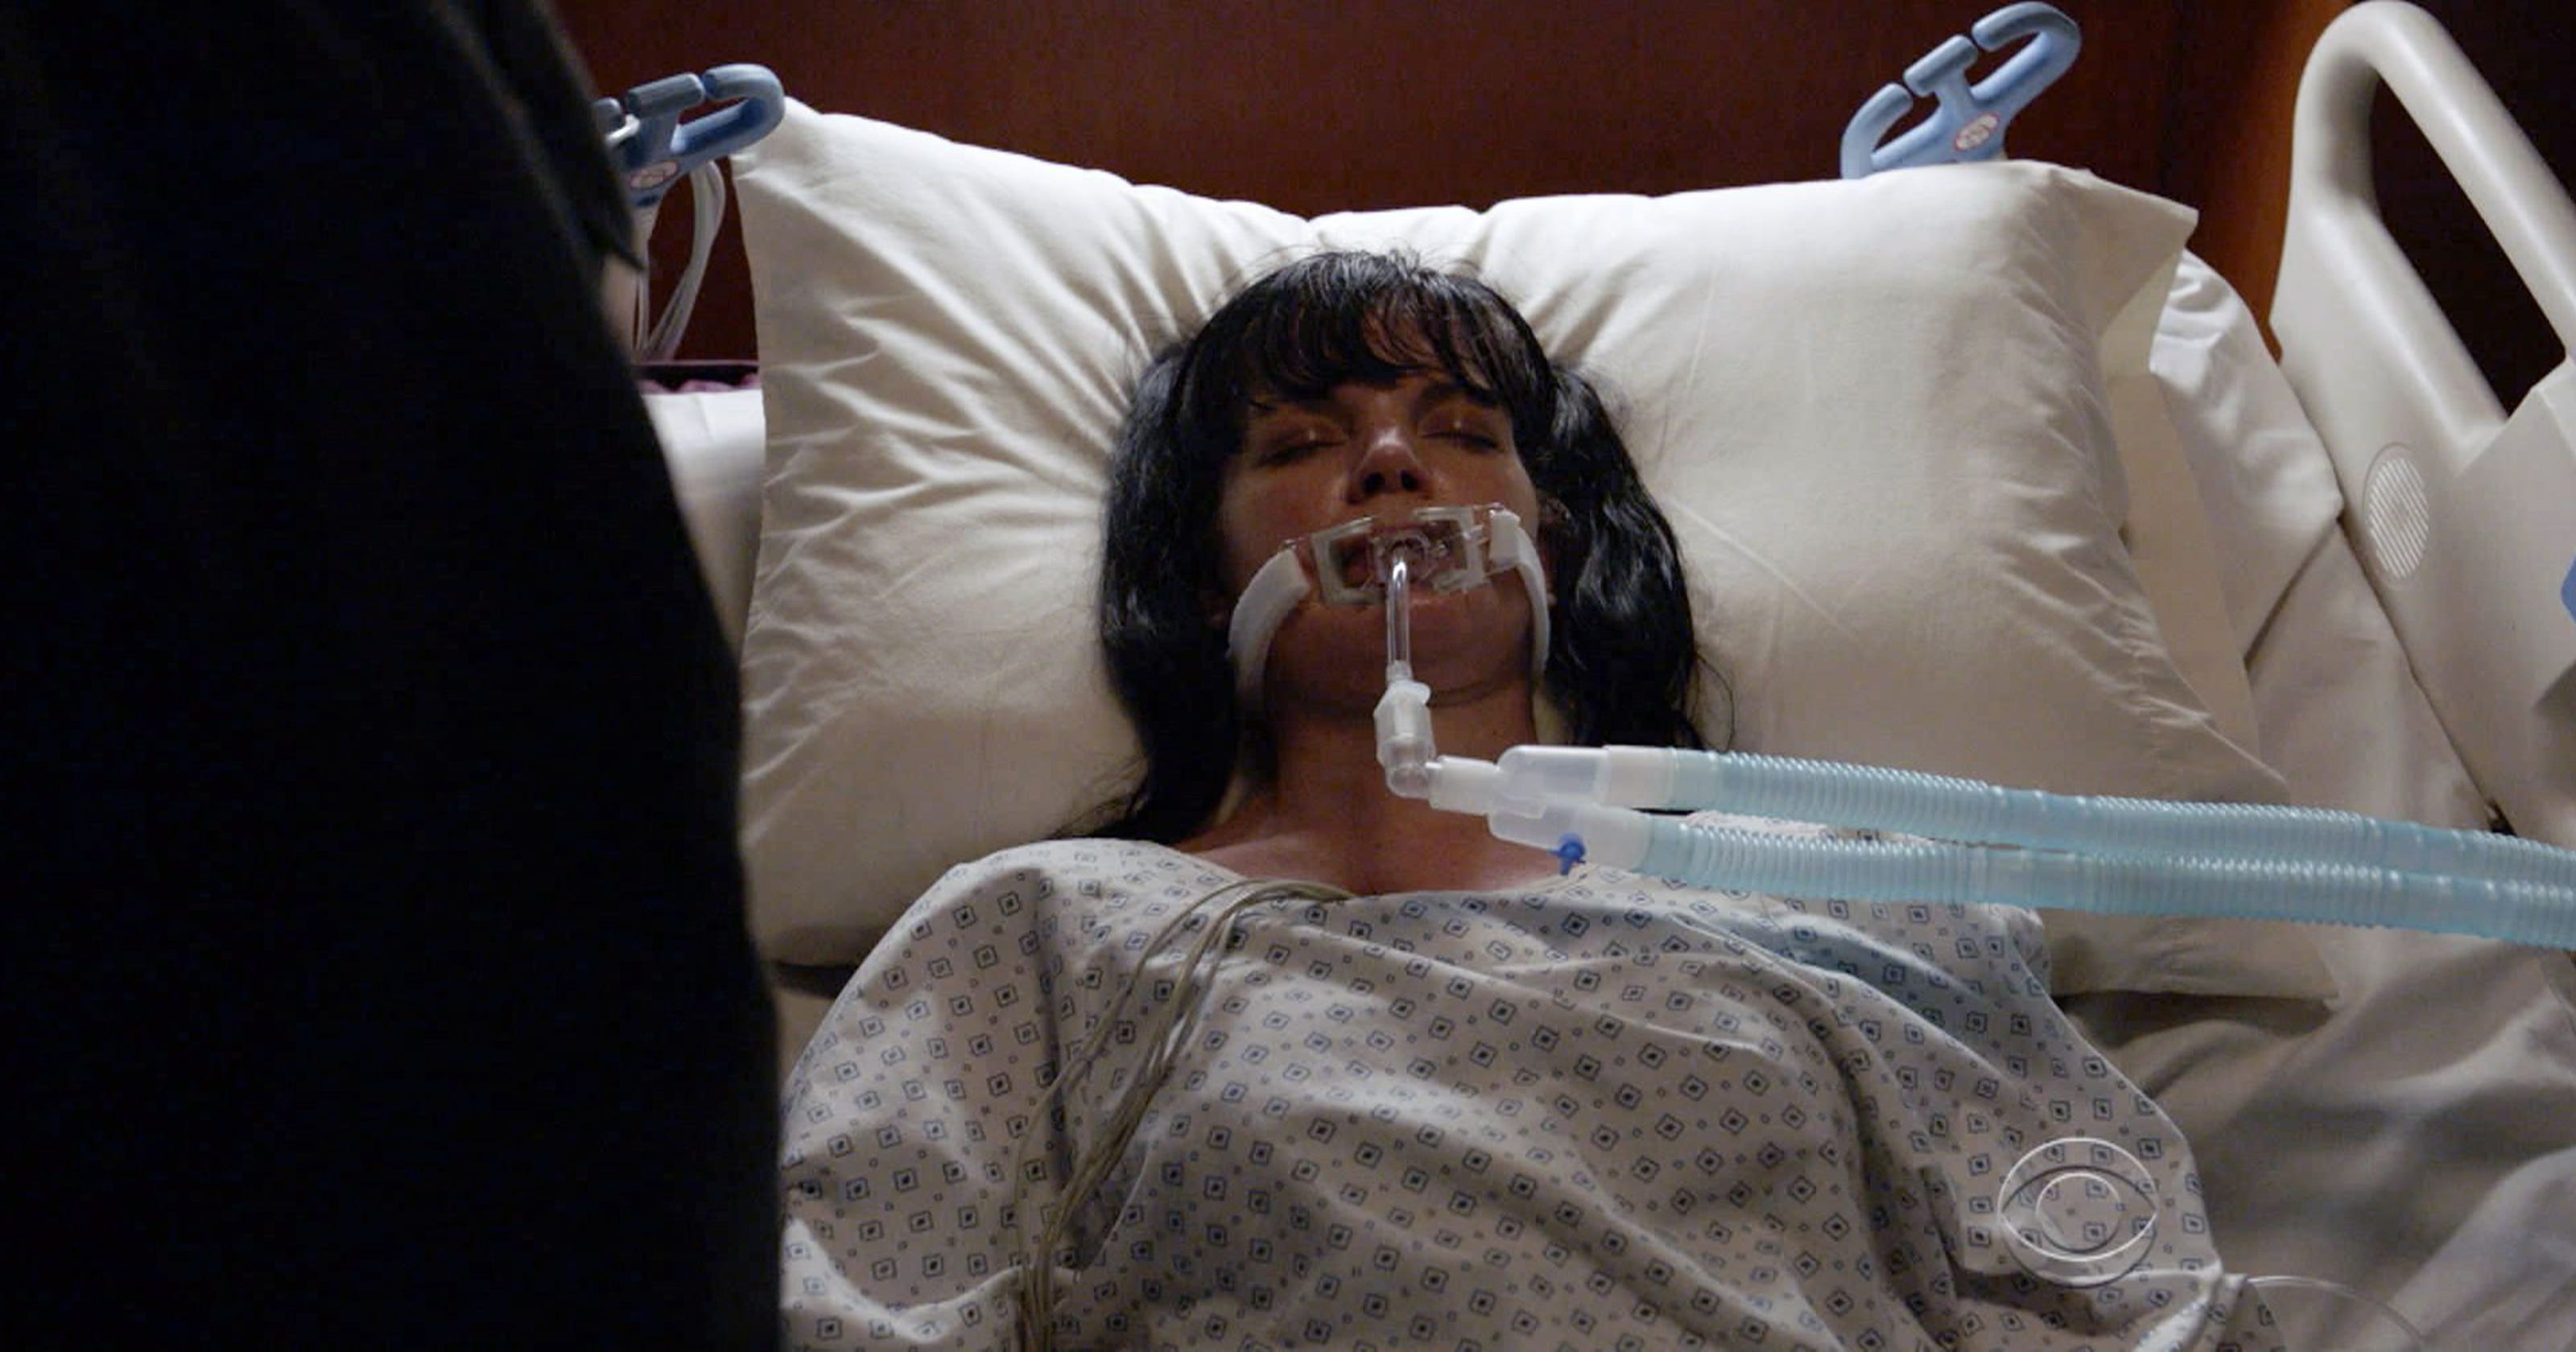 NCIS' recap: How Pauley Perrette's Abby exited after 15 seasons